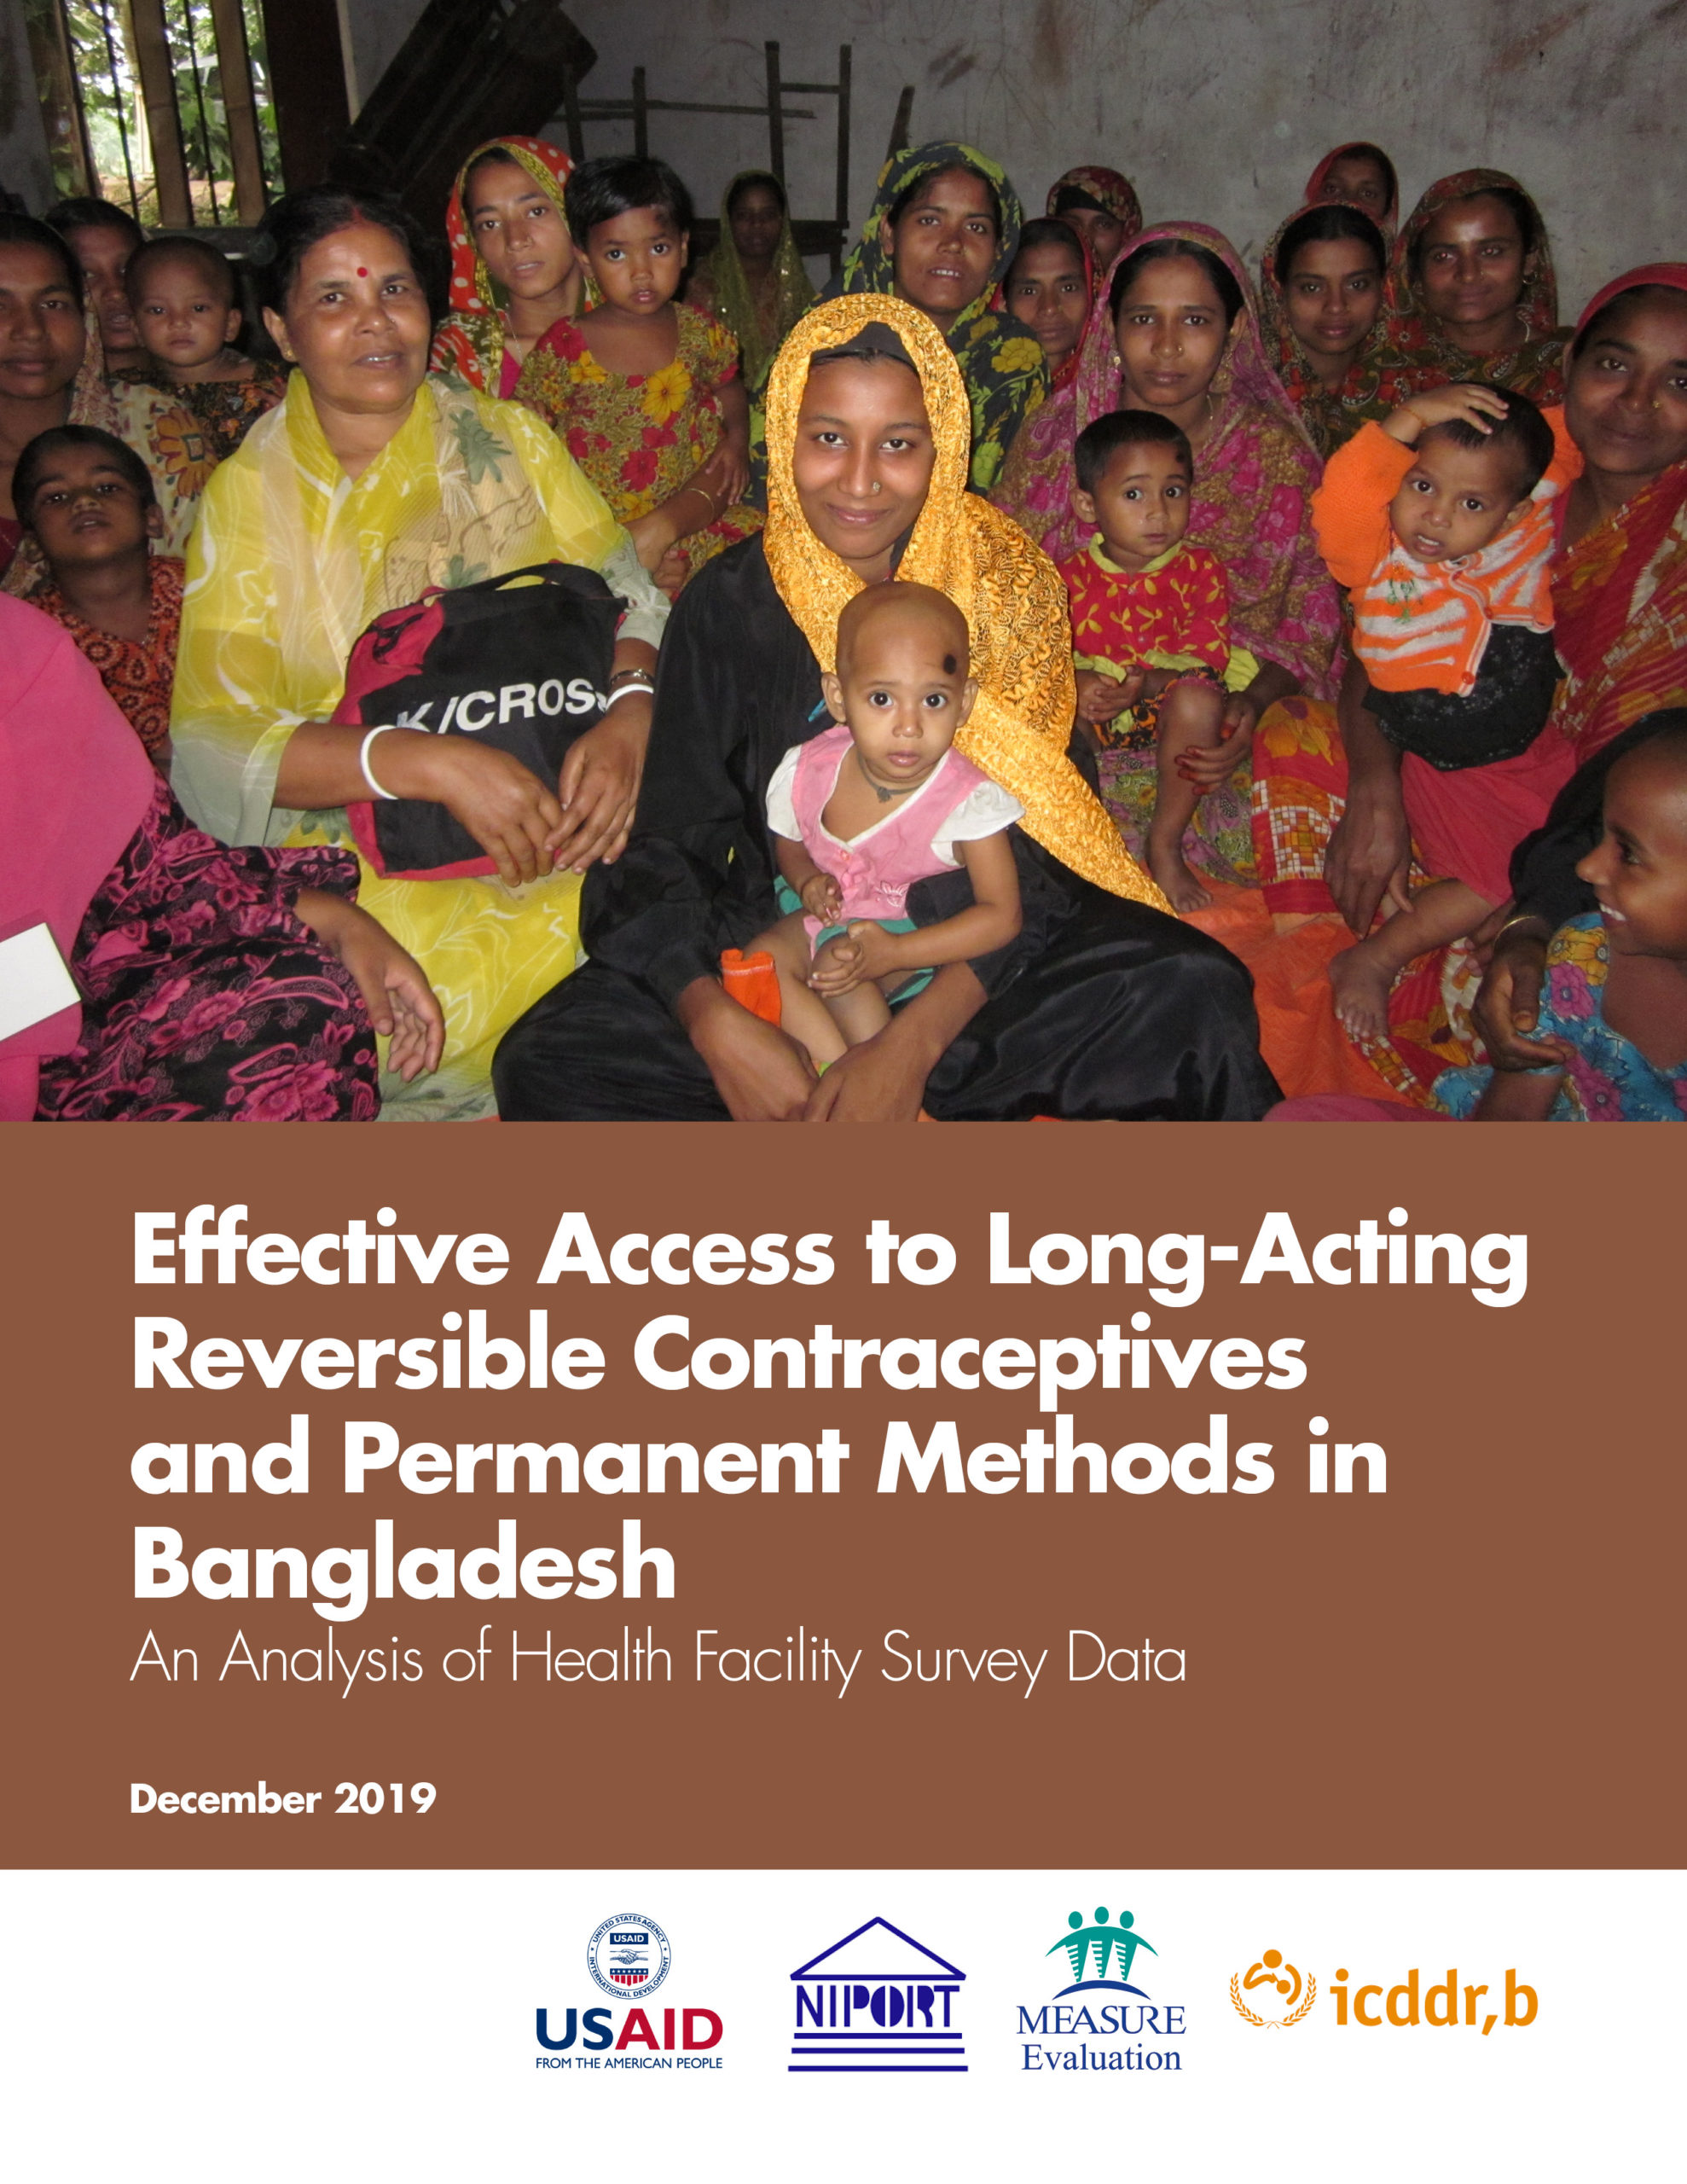 Effective Access to Long-Acting Reversible Contraceptives and Permanent Methods in Bangladesh